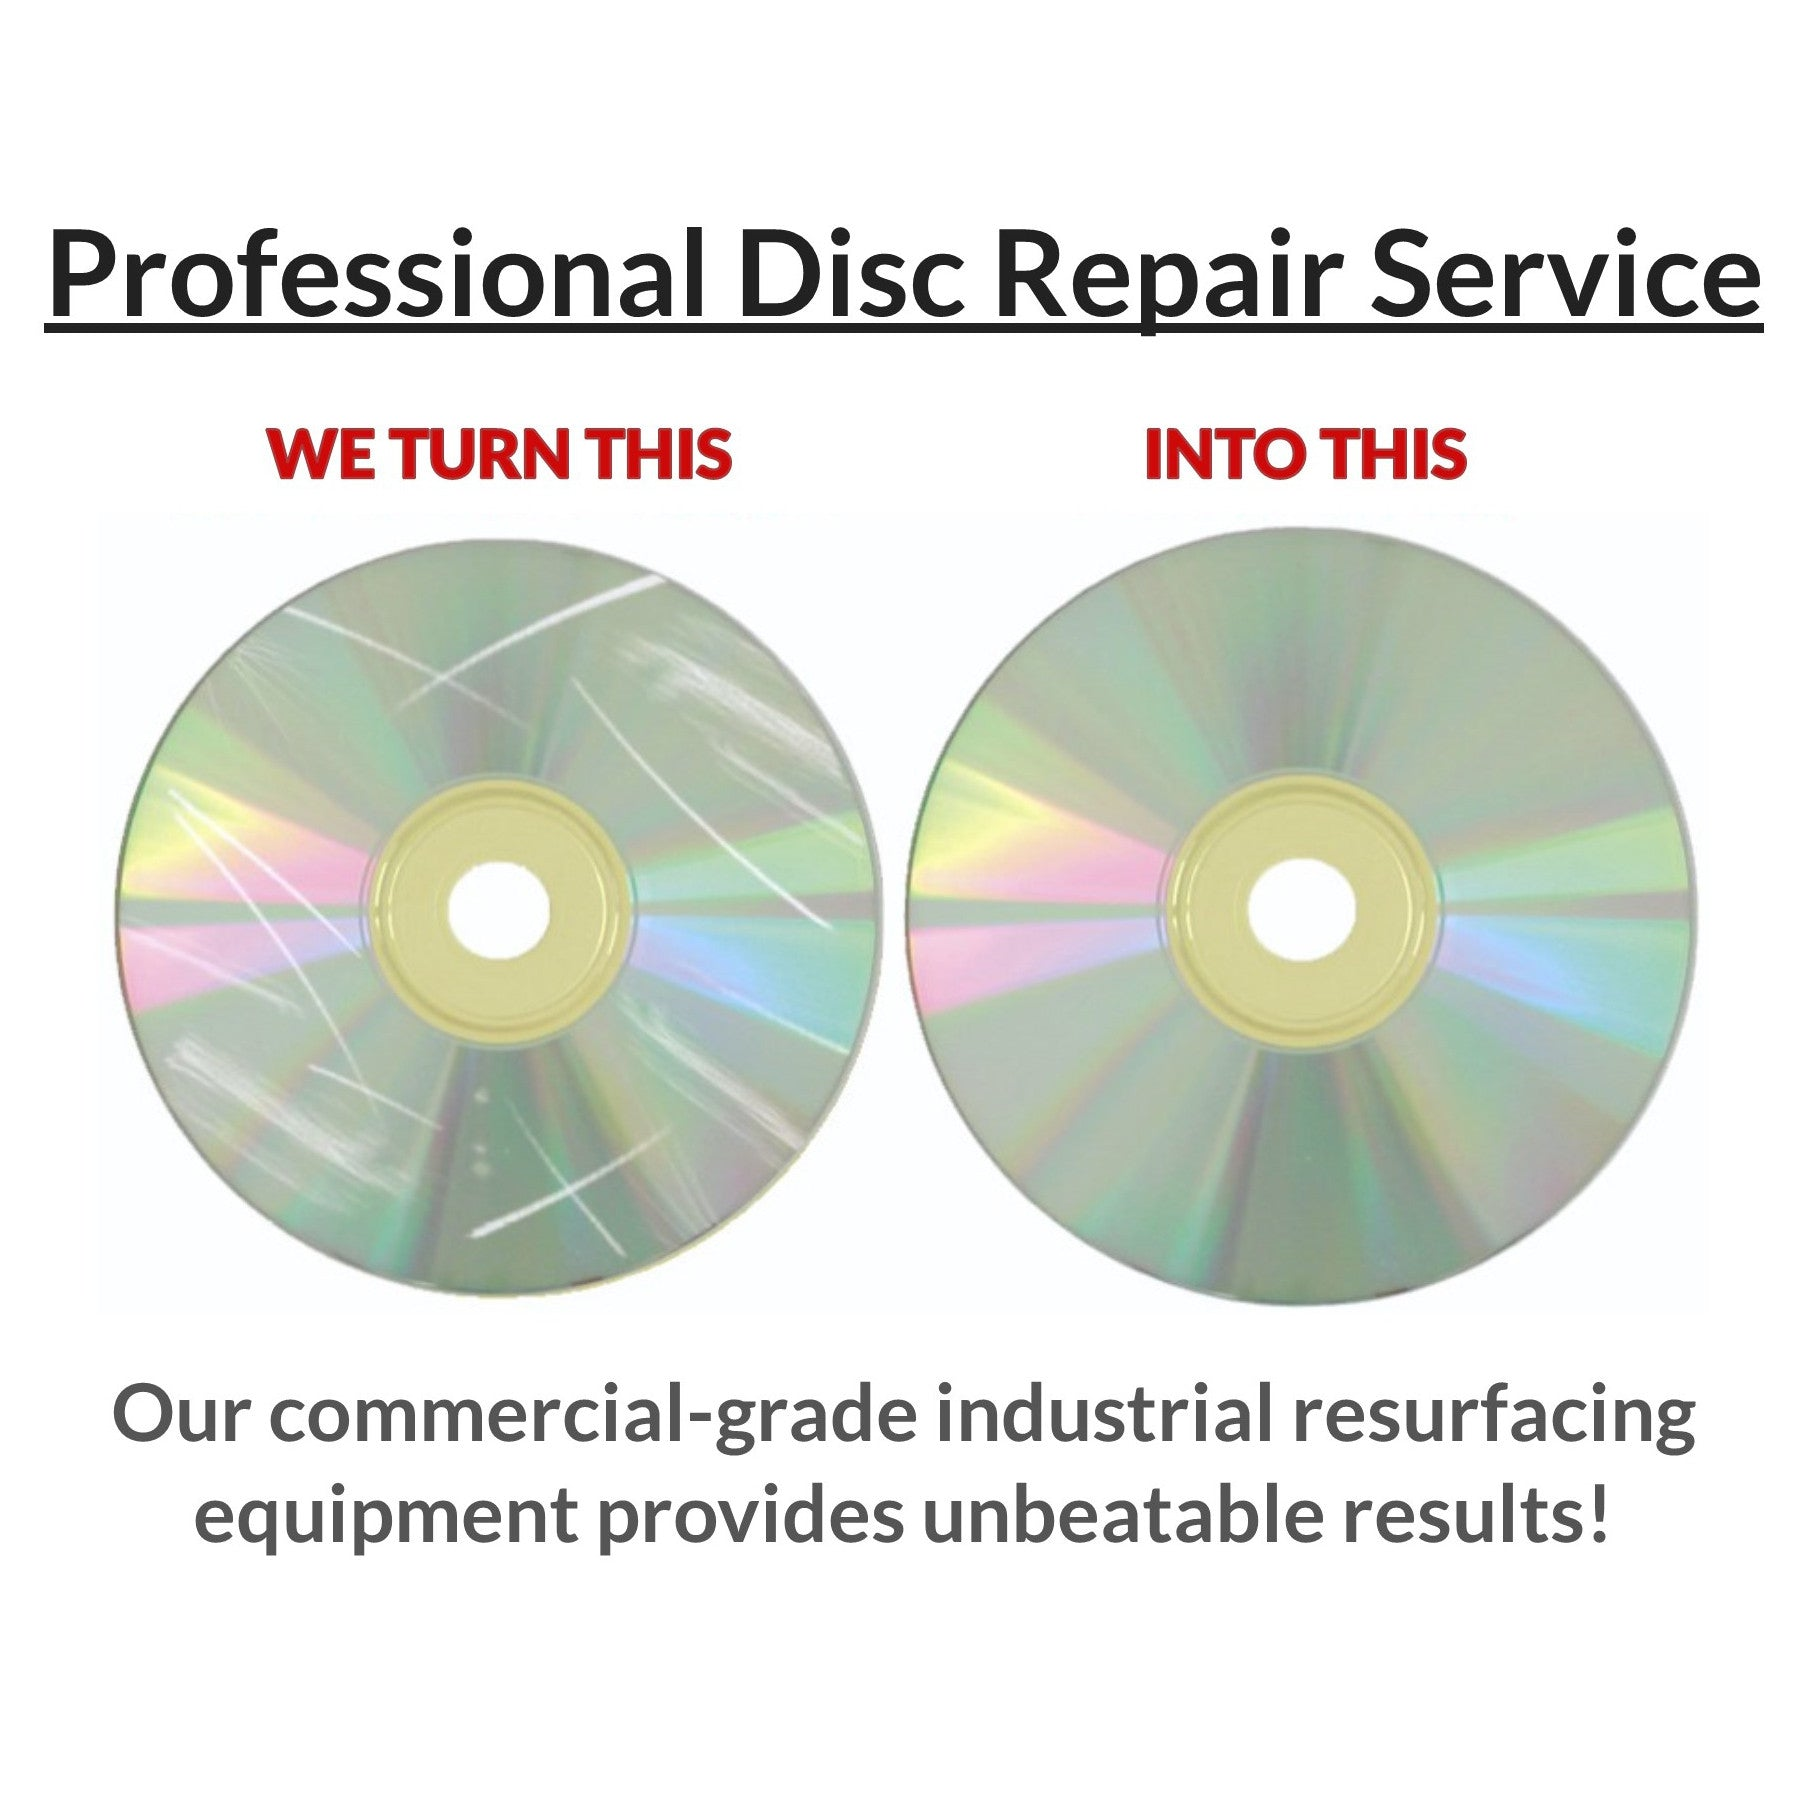 CDs 1000 Blu-rays Mail-In Scratch Removal /& Disc Repair Service DVDs Games